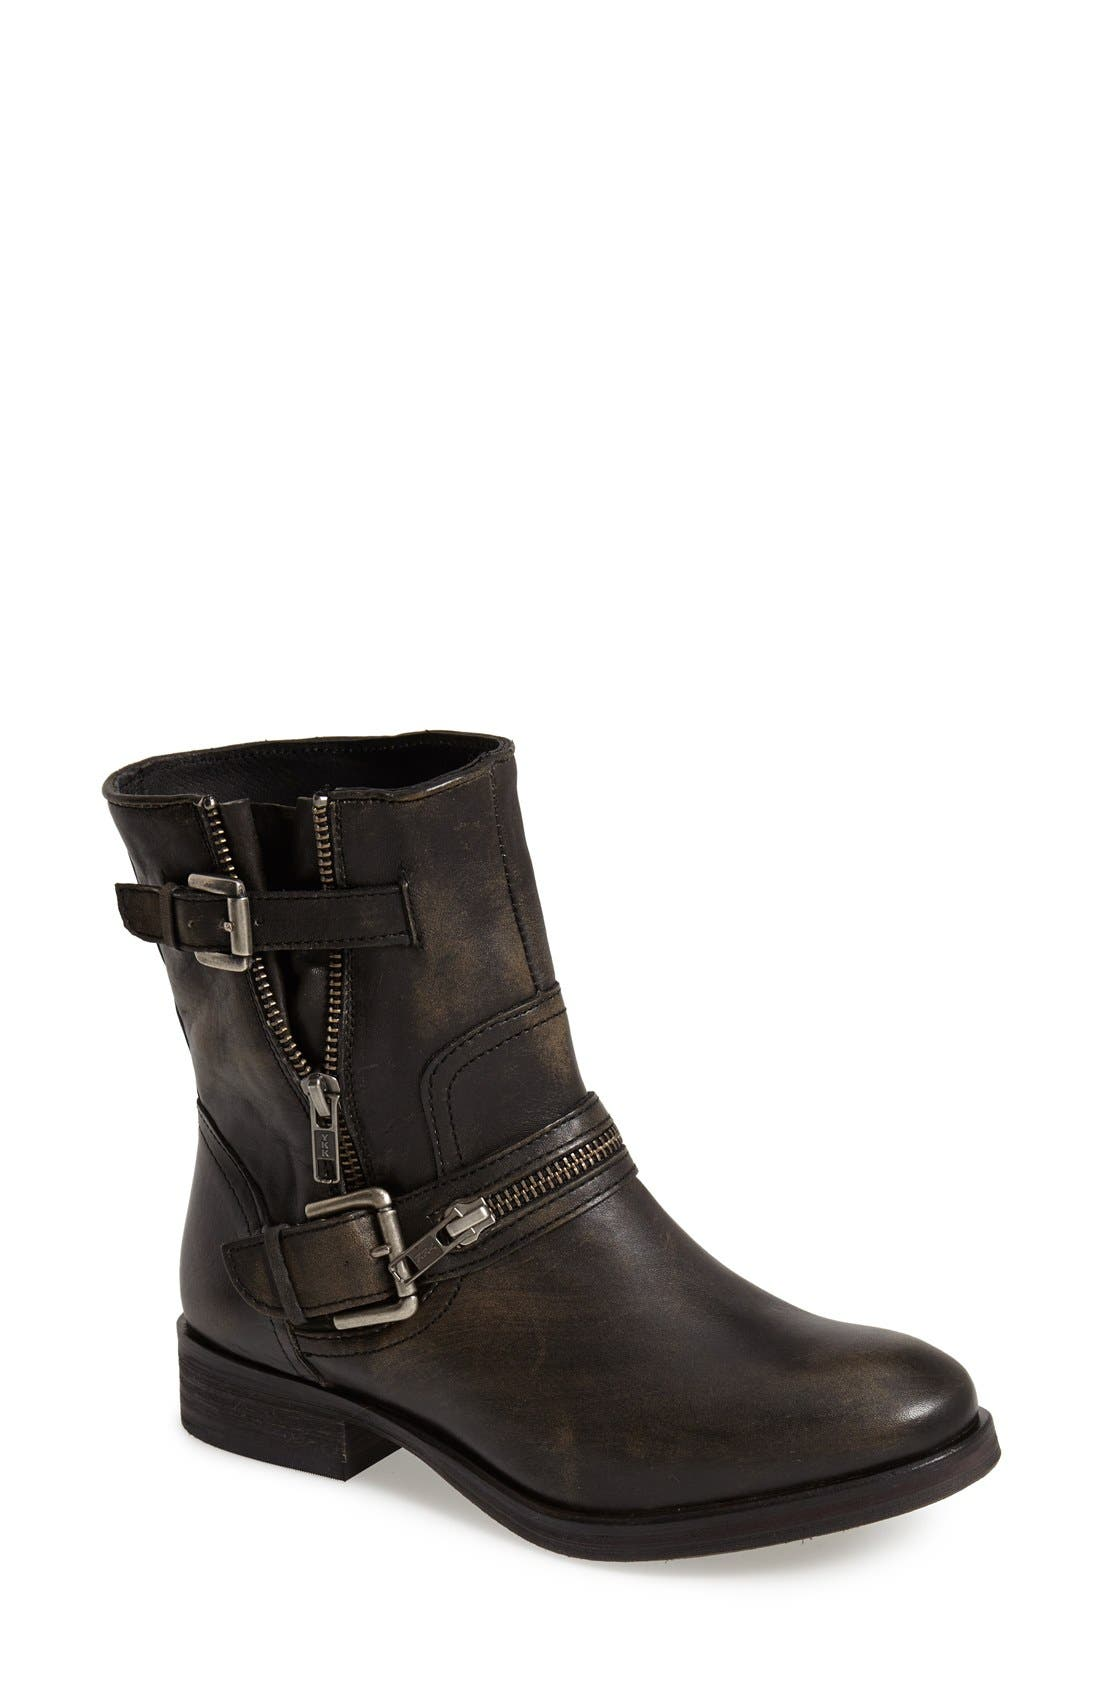 Main Image - Hinge 'Compadre' Leather Moto Boot (Women)